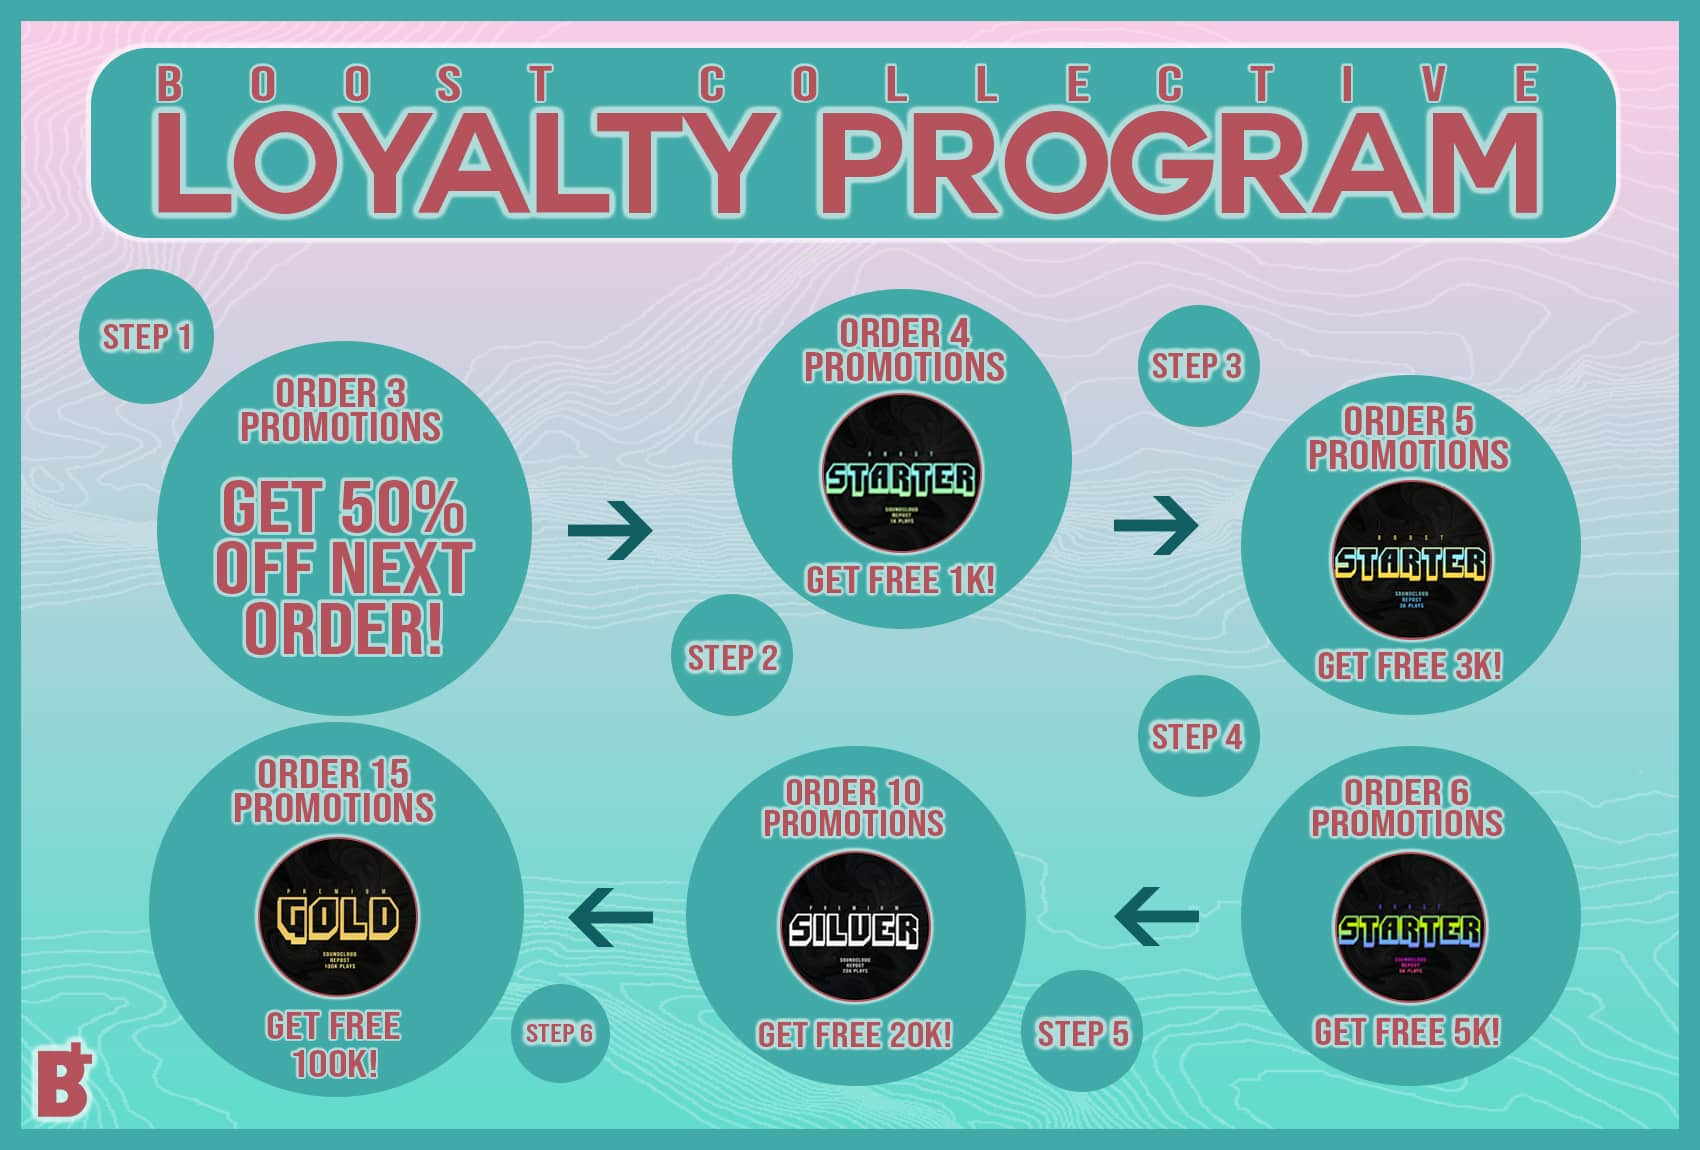 Loyalty Program Site-min.jpg